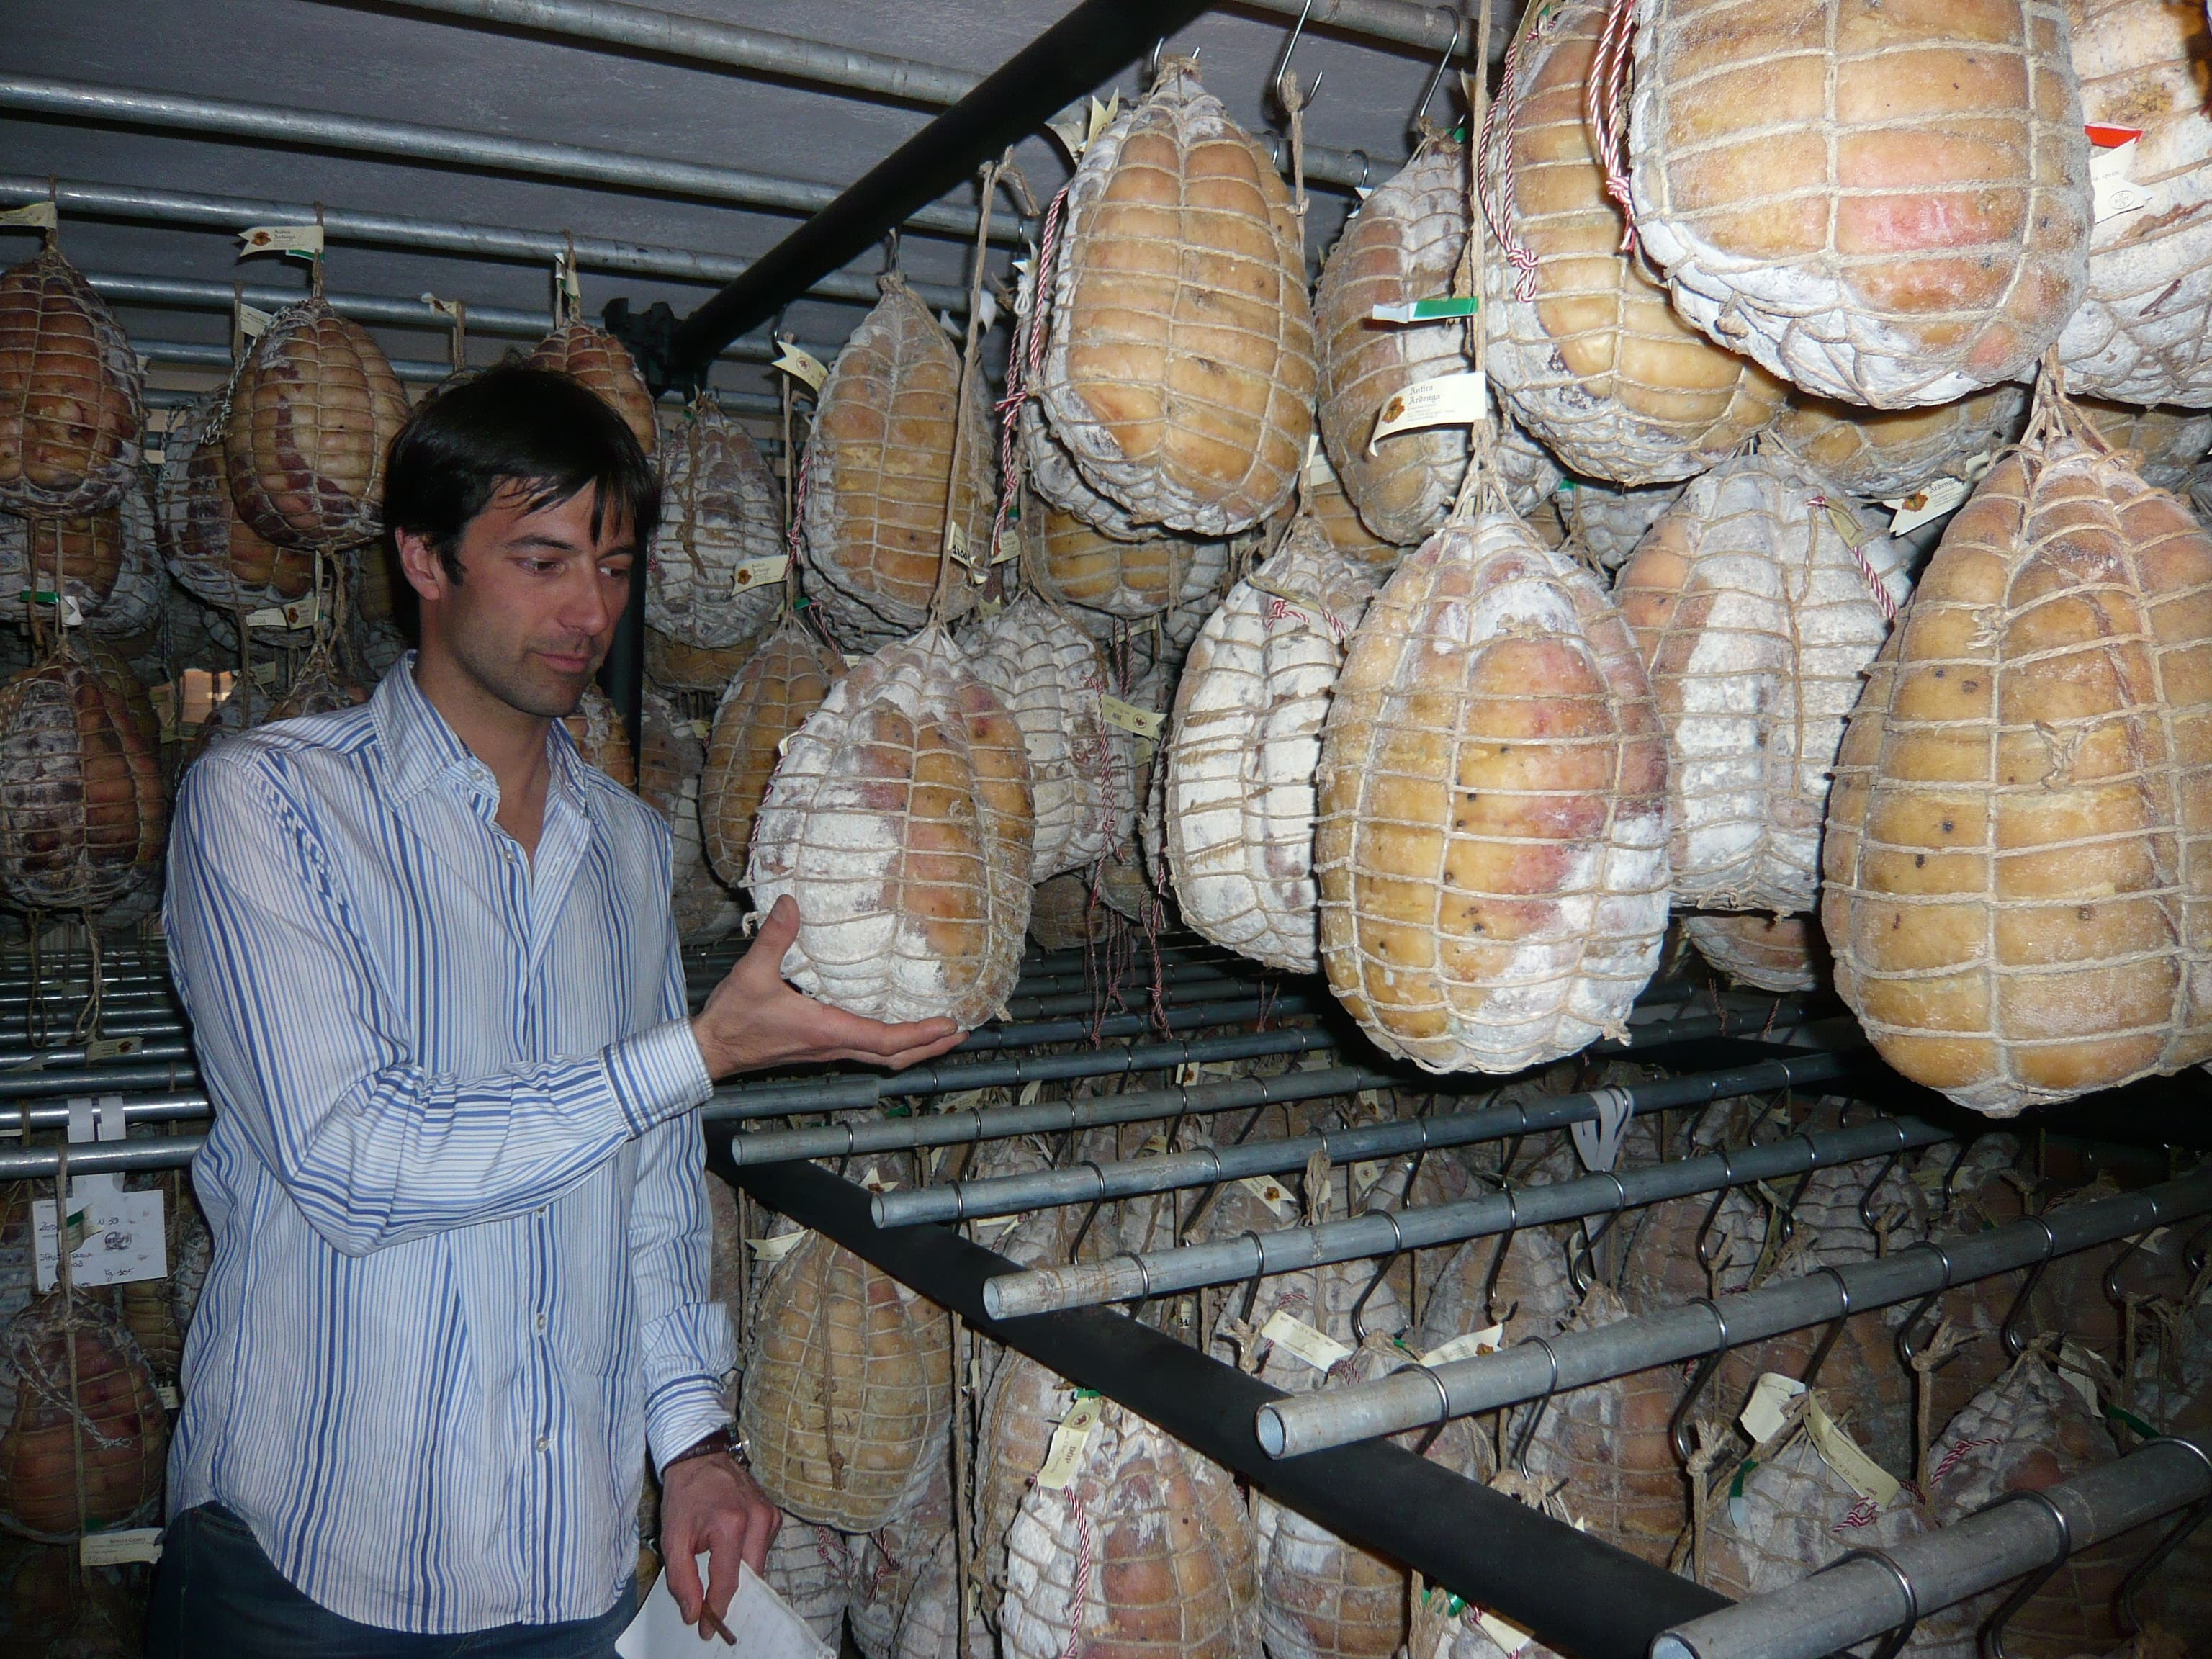 Riccardo in a Culatello refining cellar